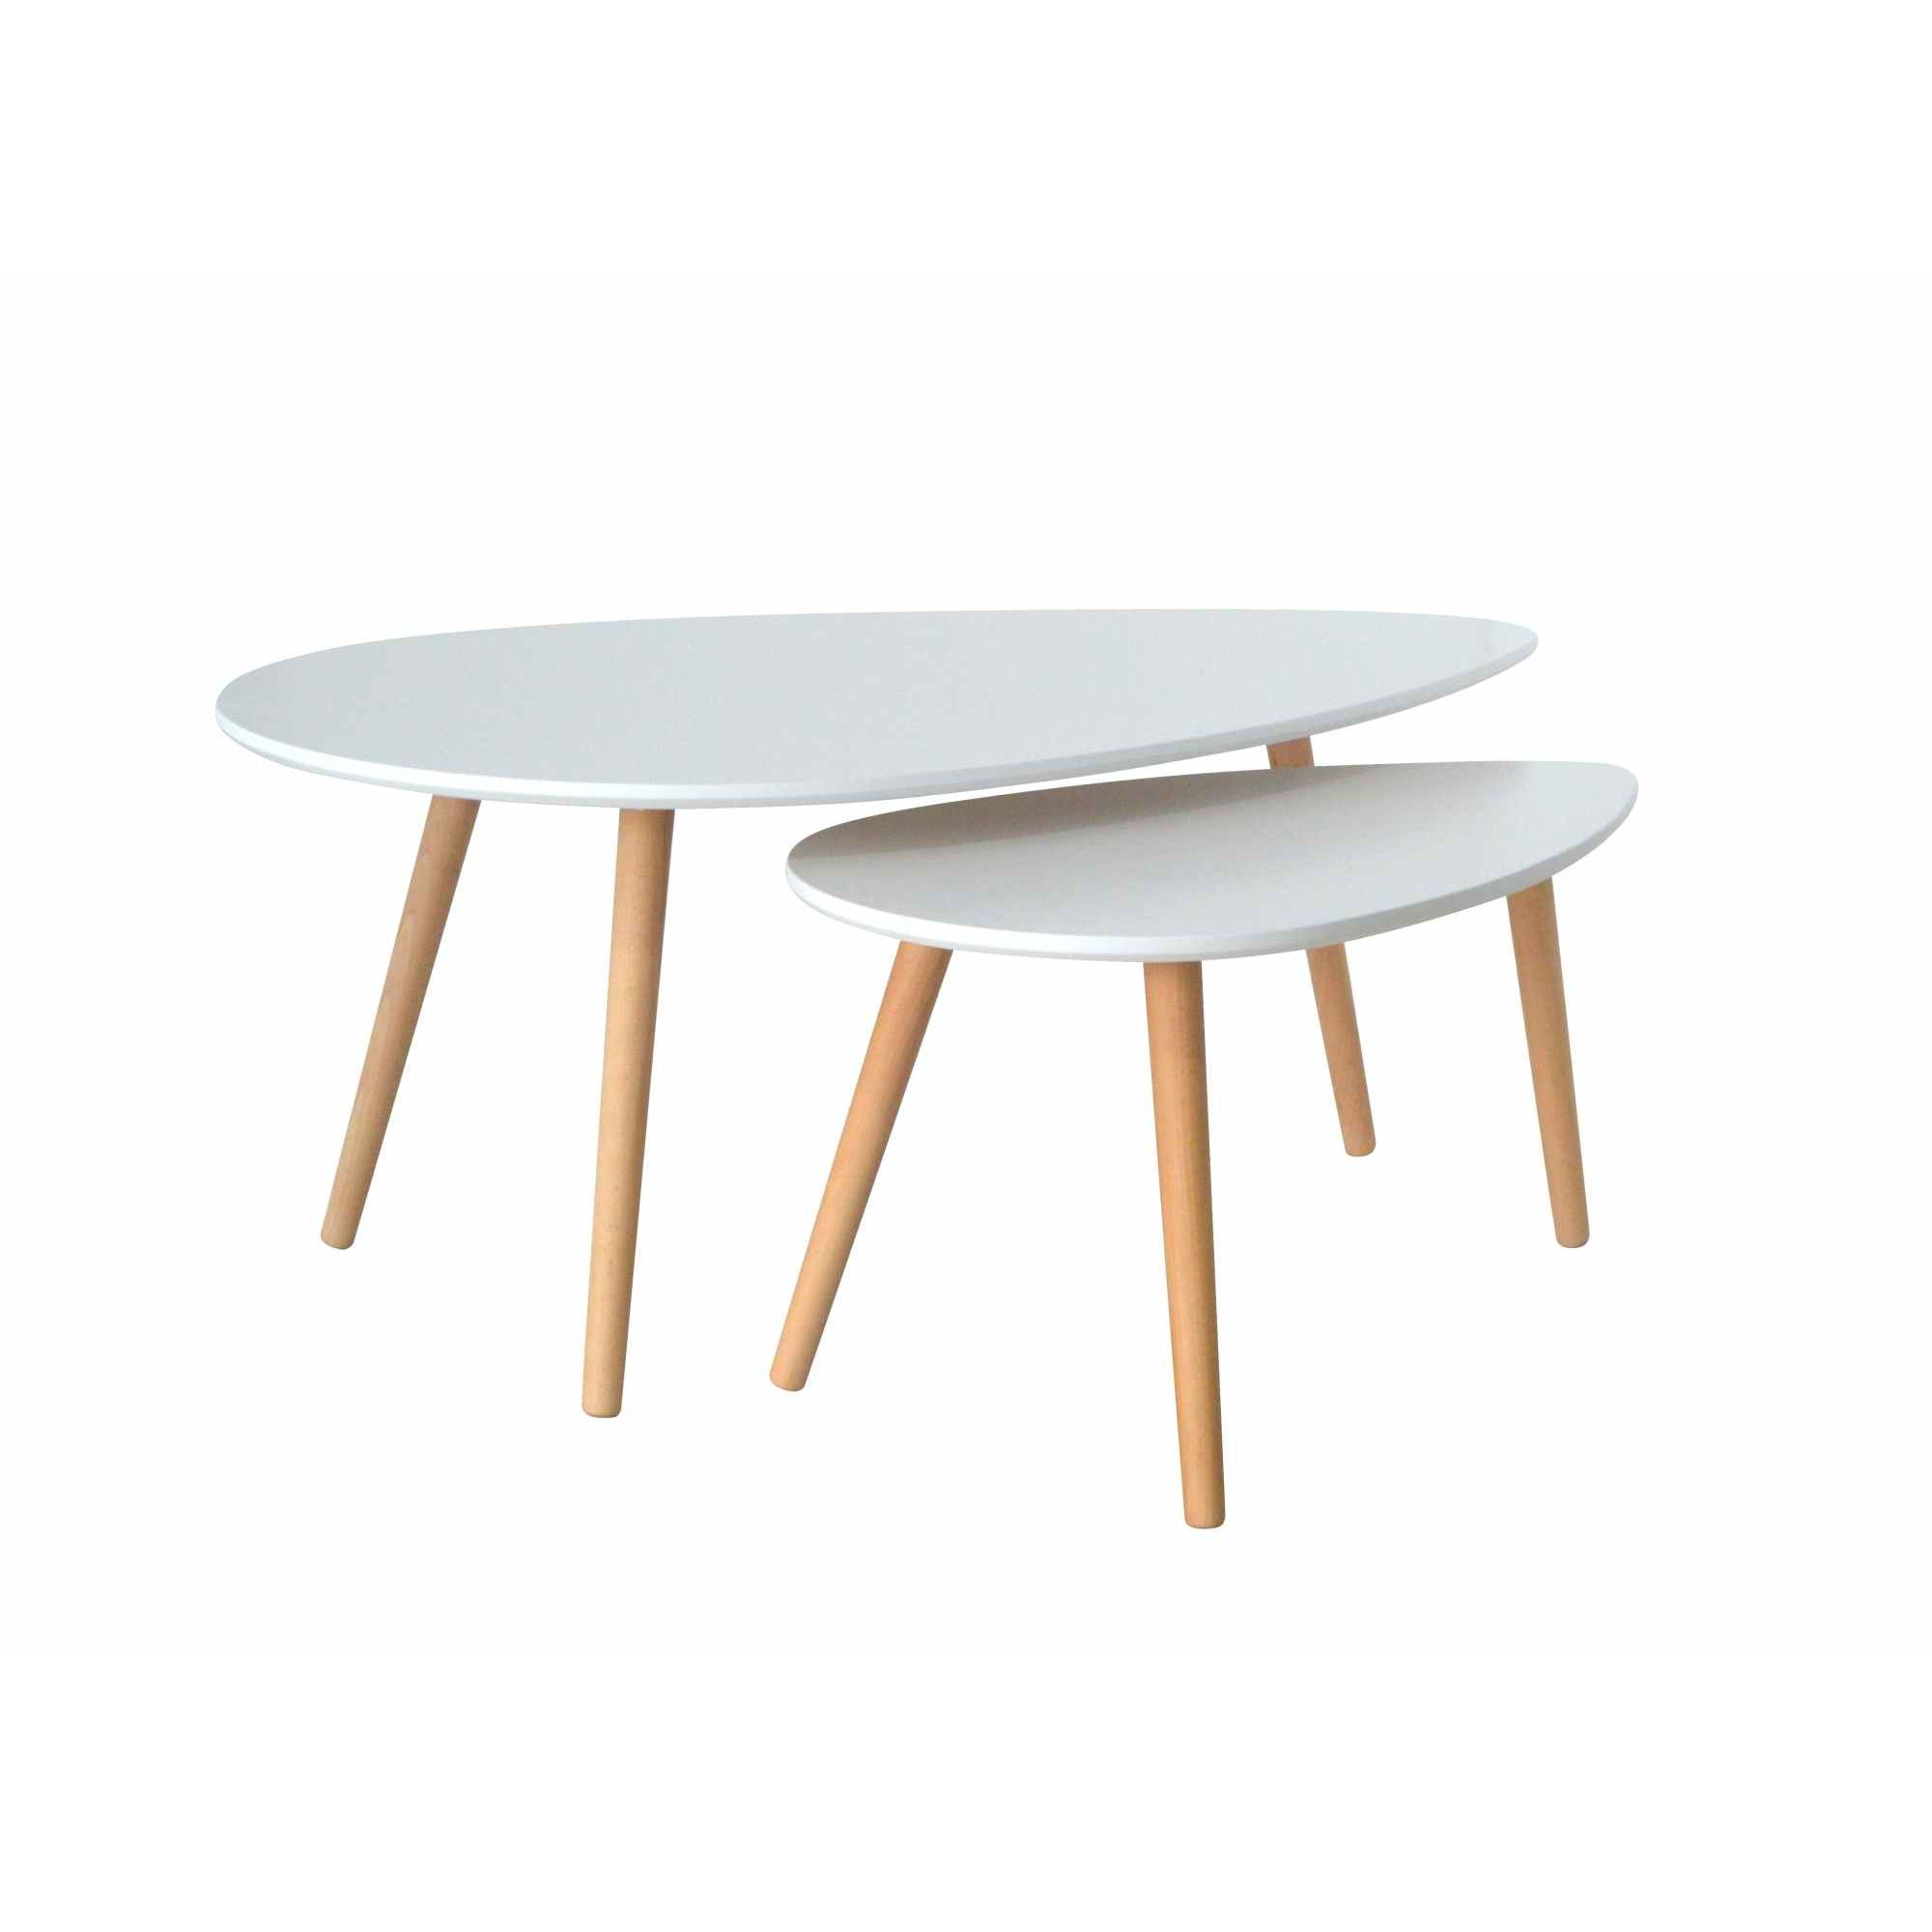 Deco in paris table basse scandinave blanc avesta avesta - Table de salon style scandinave ...